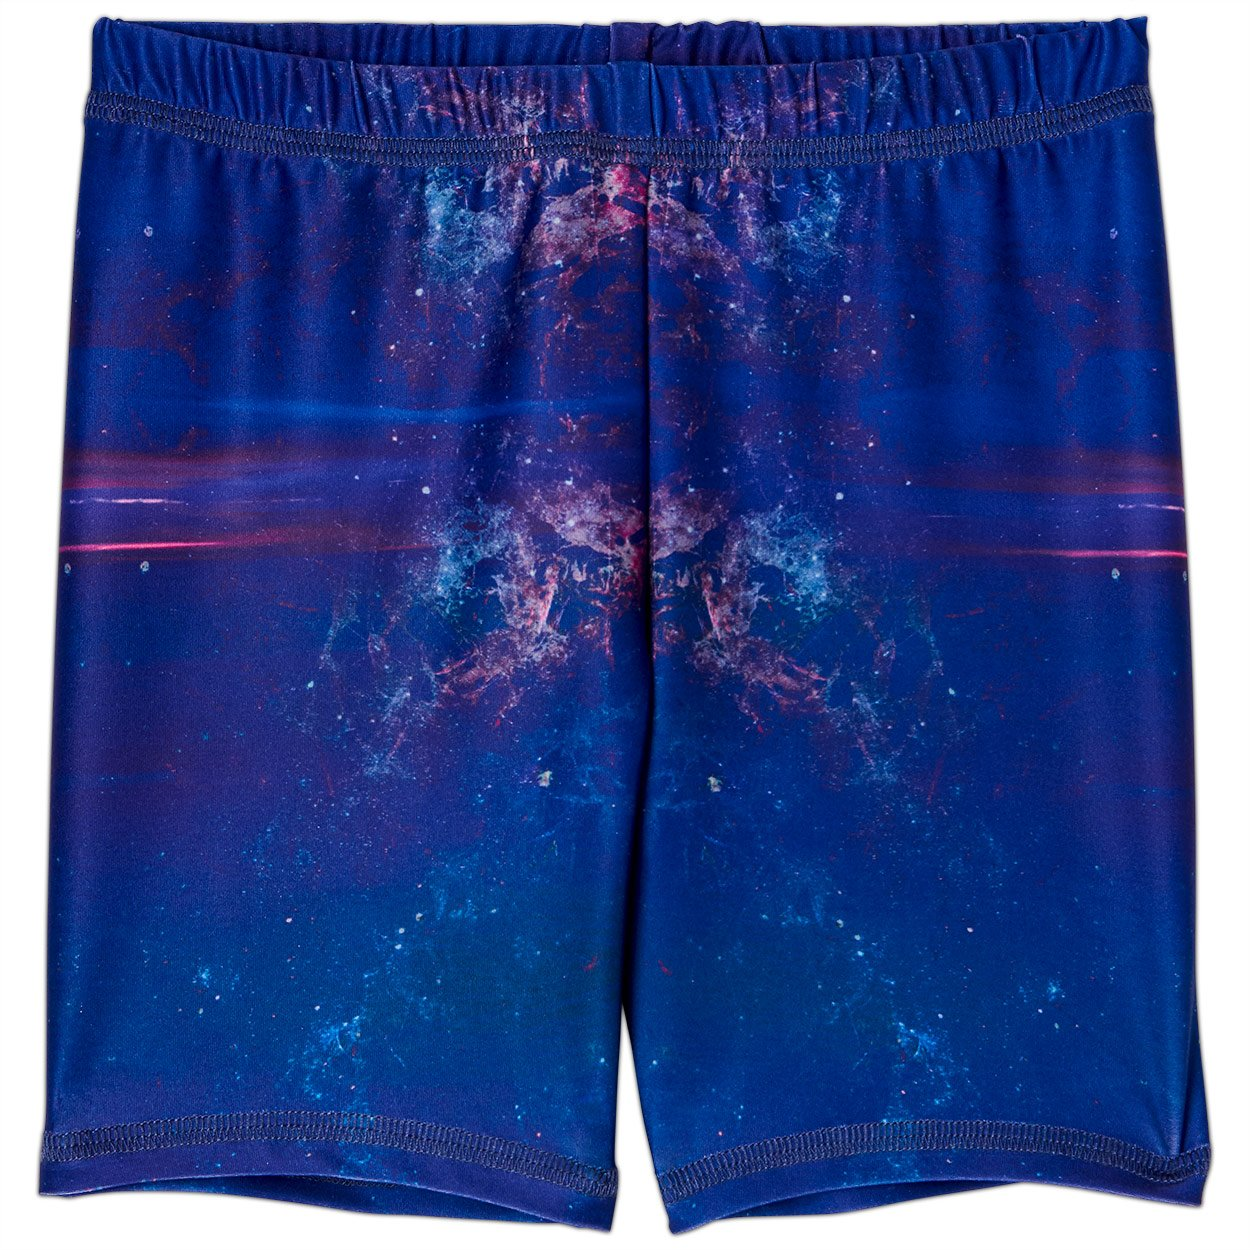 Cosmos Sunblocker Shorts Upf50 Kids Boys Girls Size 2 12 Purple Unisex Sunpoplife